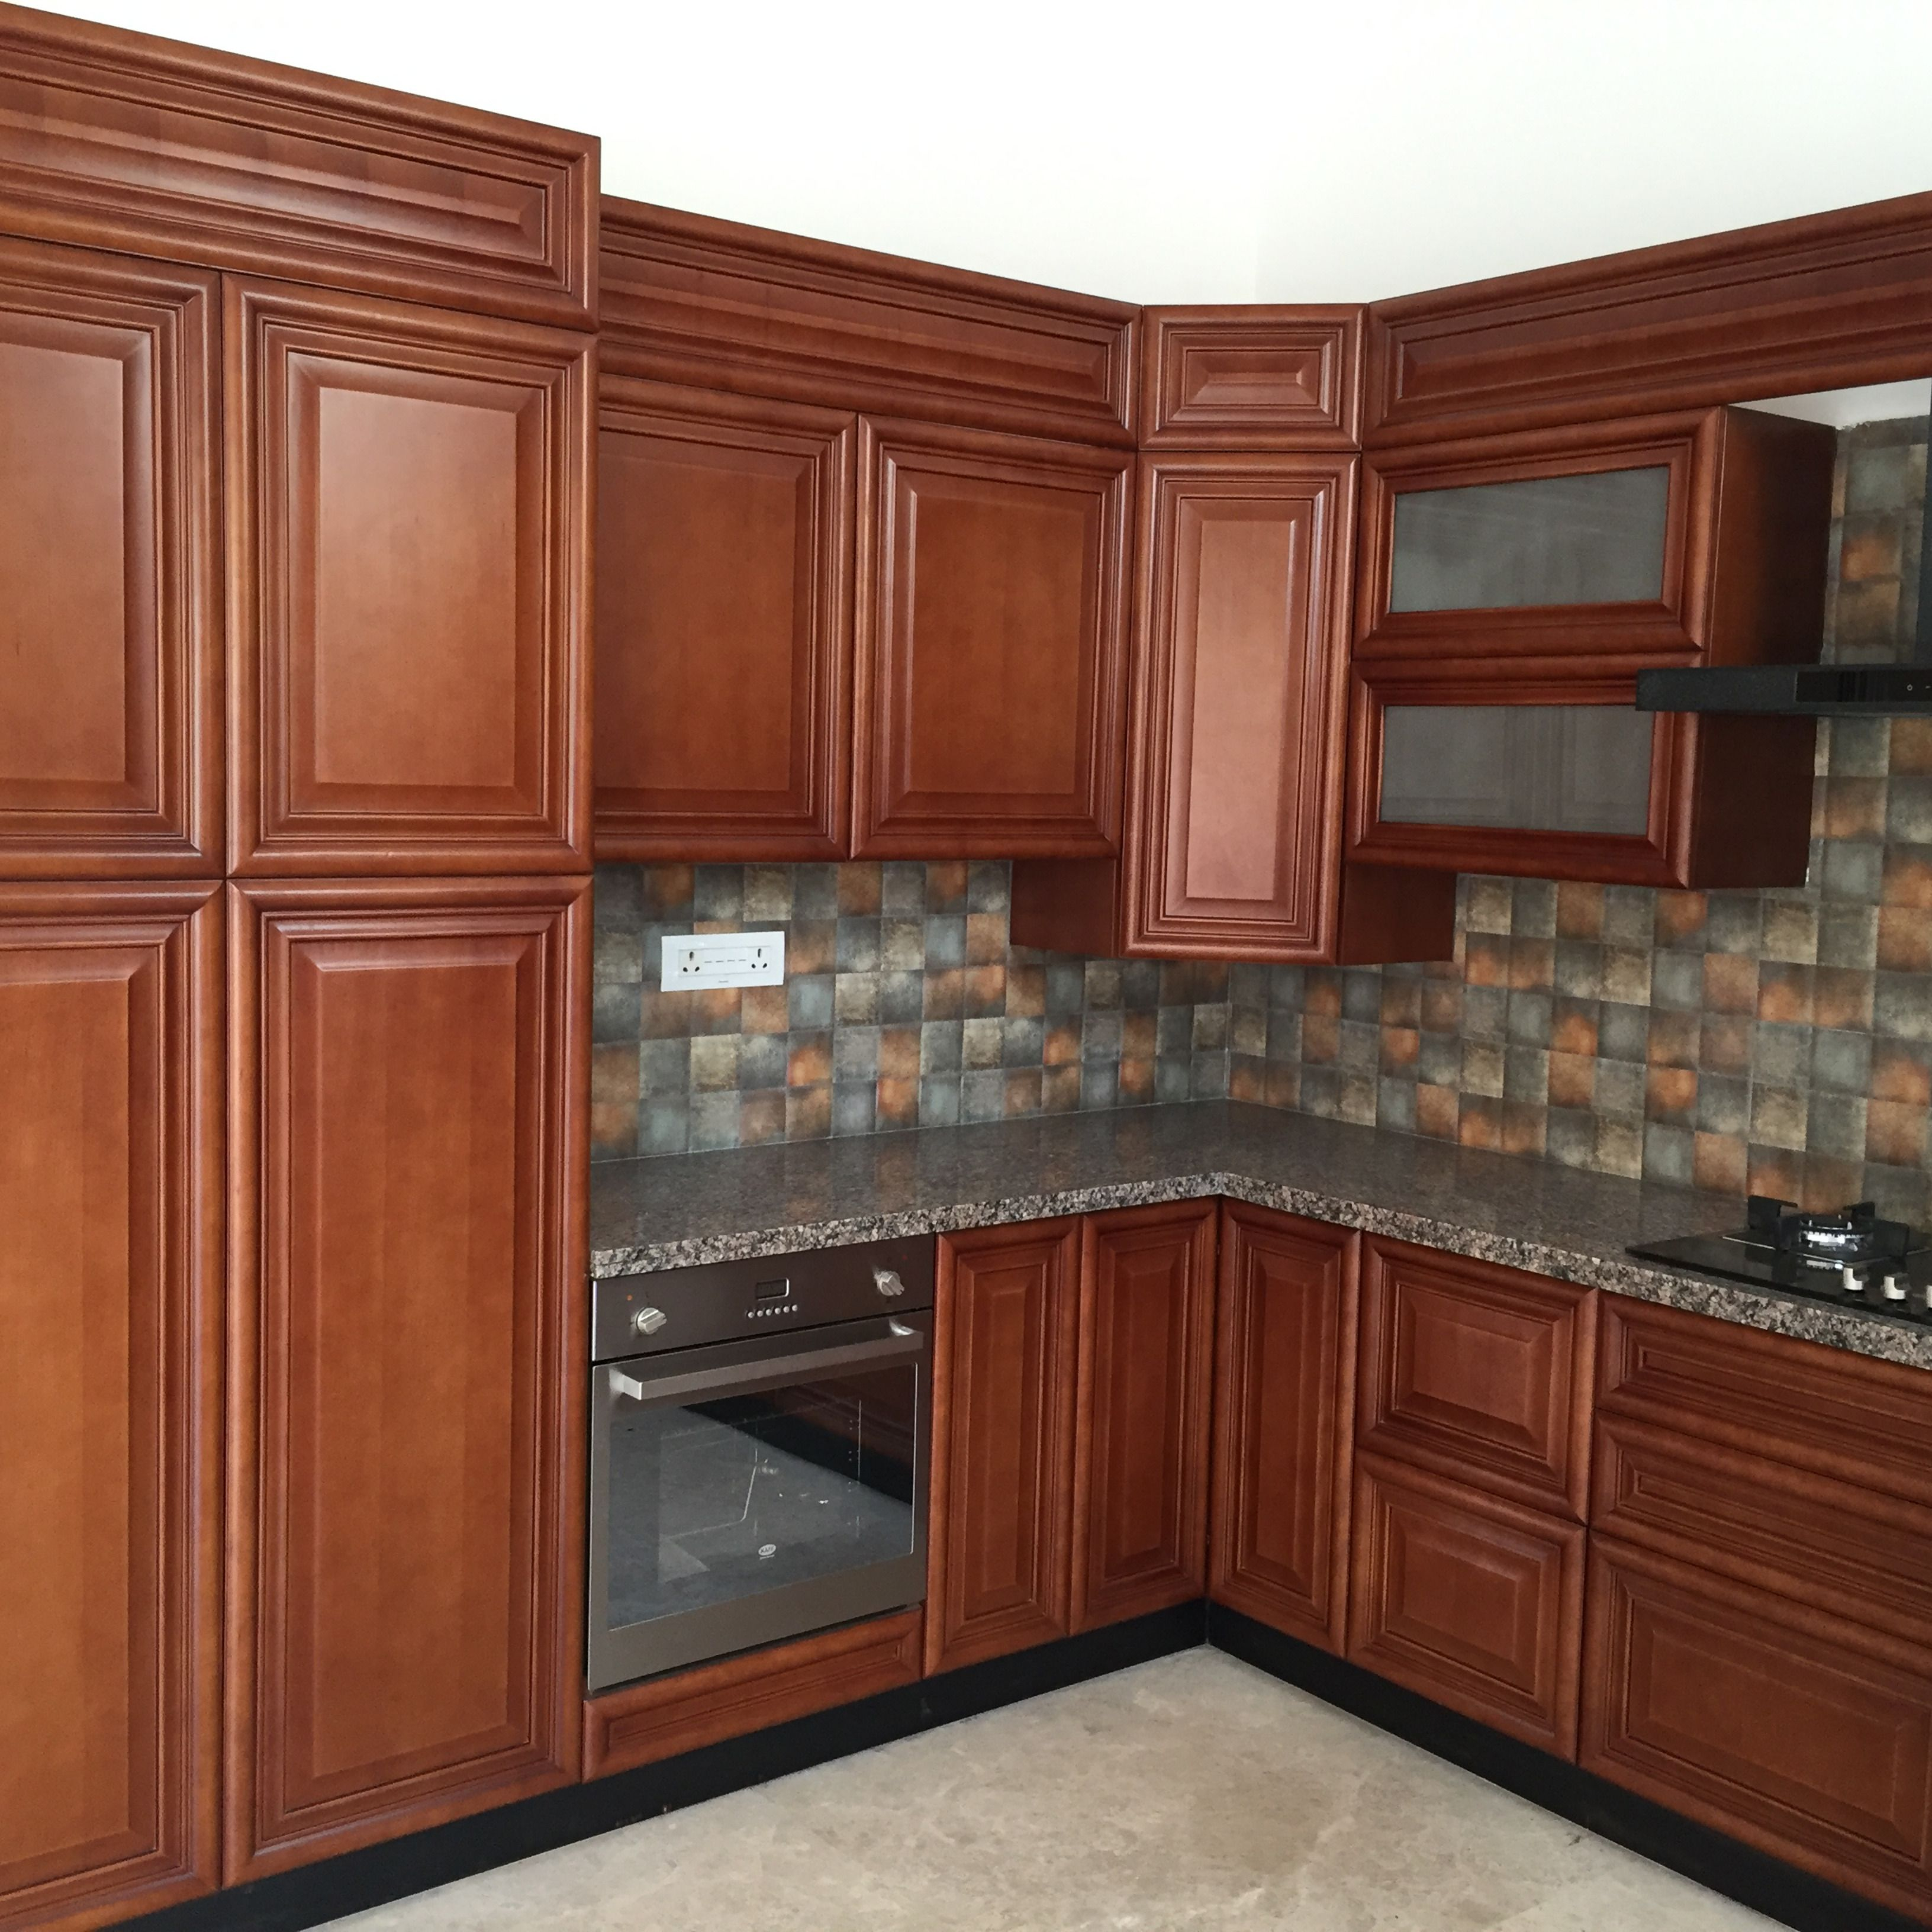 Modular kitchen with Island counter in Wood finish ...